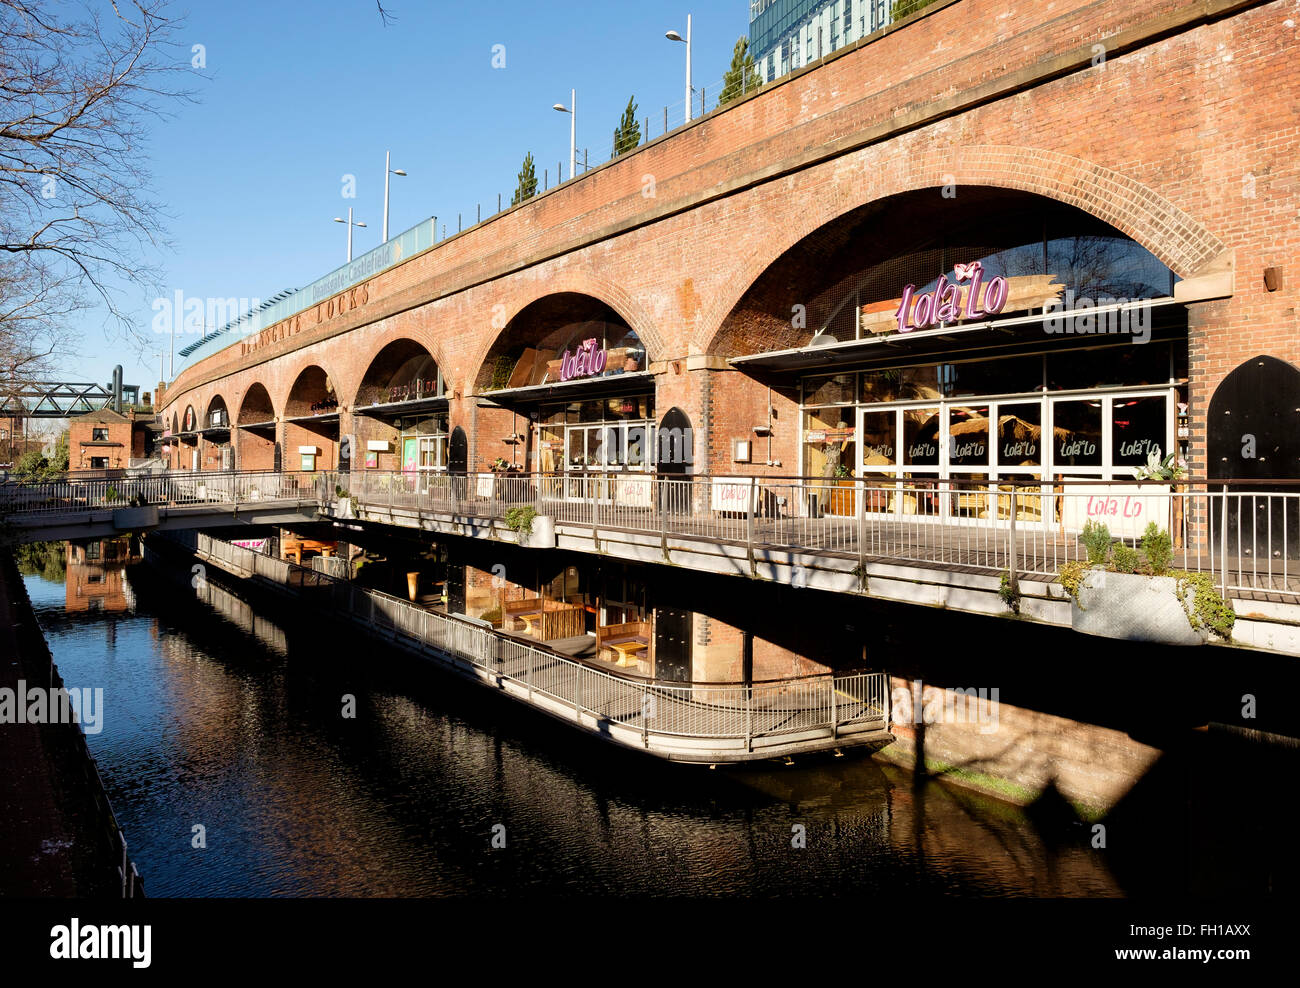 Manchester, UK - 15 February 2016: The businesses of the Deansgate Locks are almost deserted in the middle of the - Stock Image